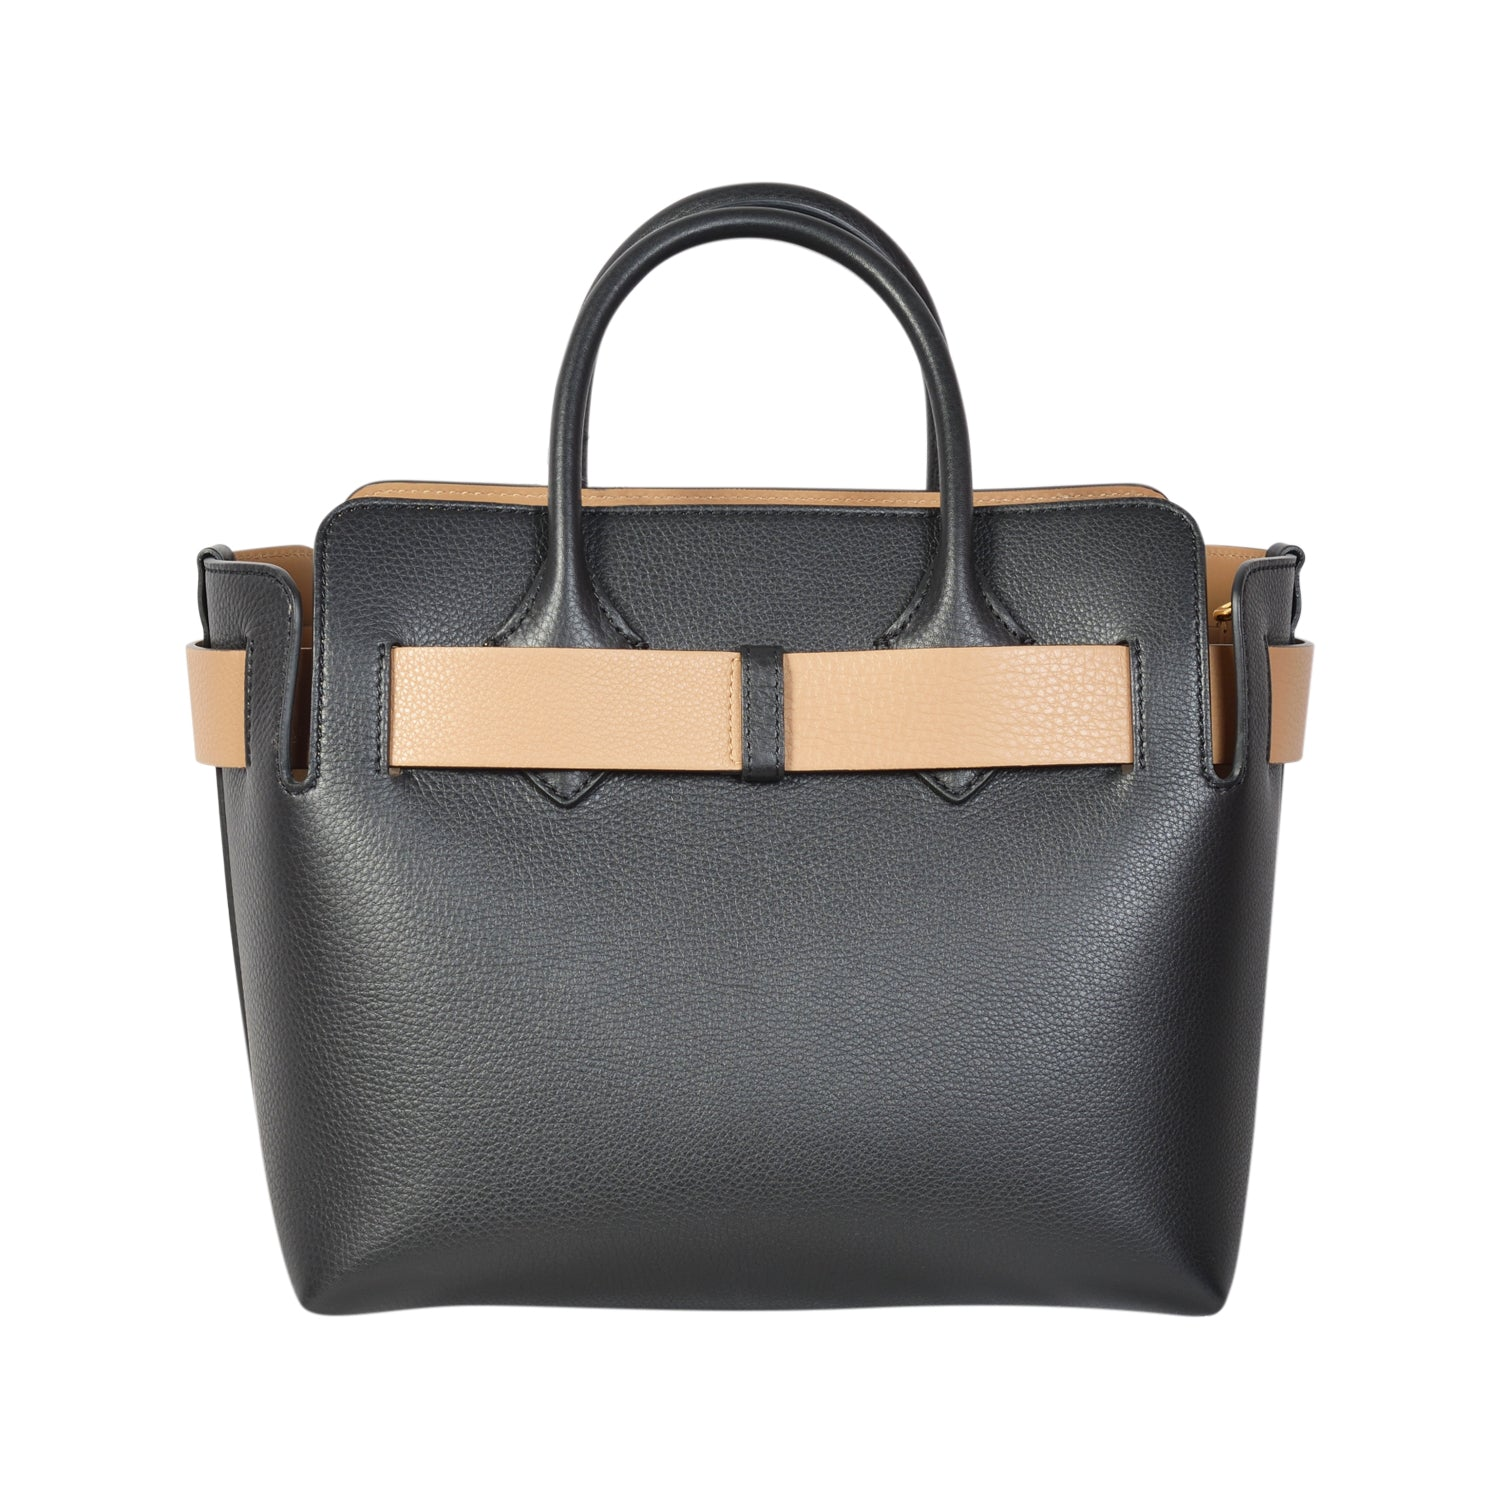 Burberry Grained calfskin tote in black leather | Shop Luxury Handbag Online